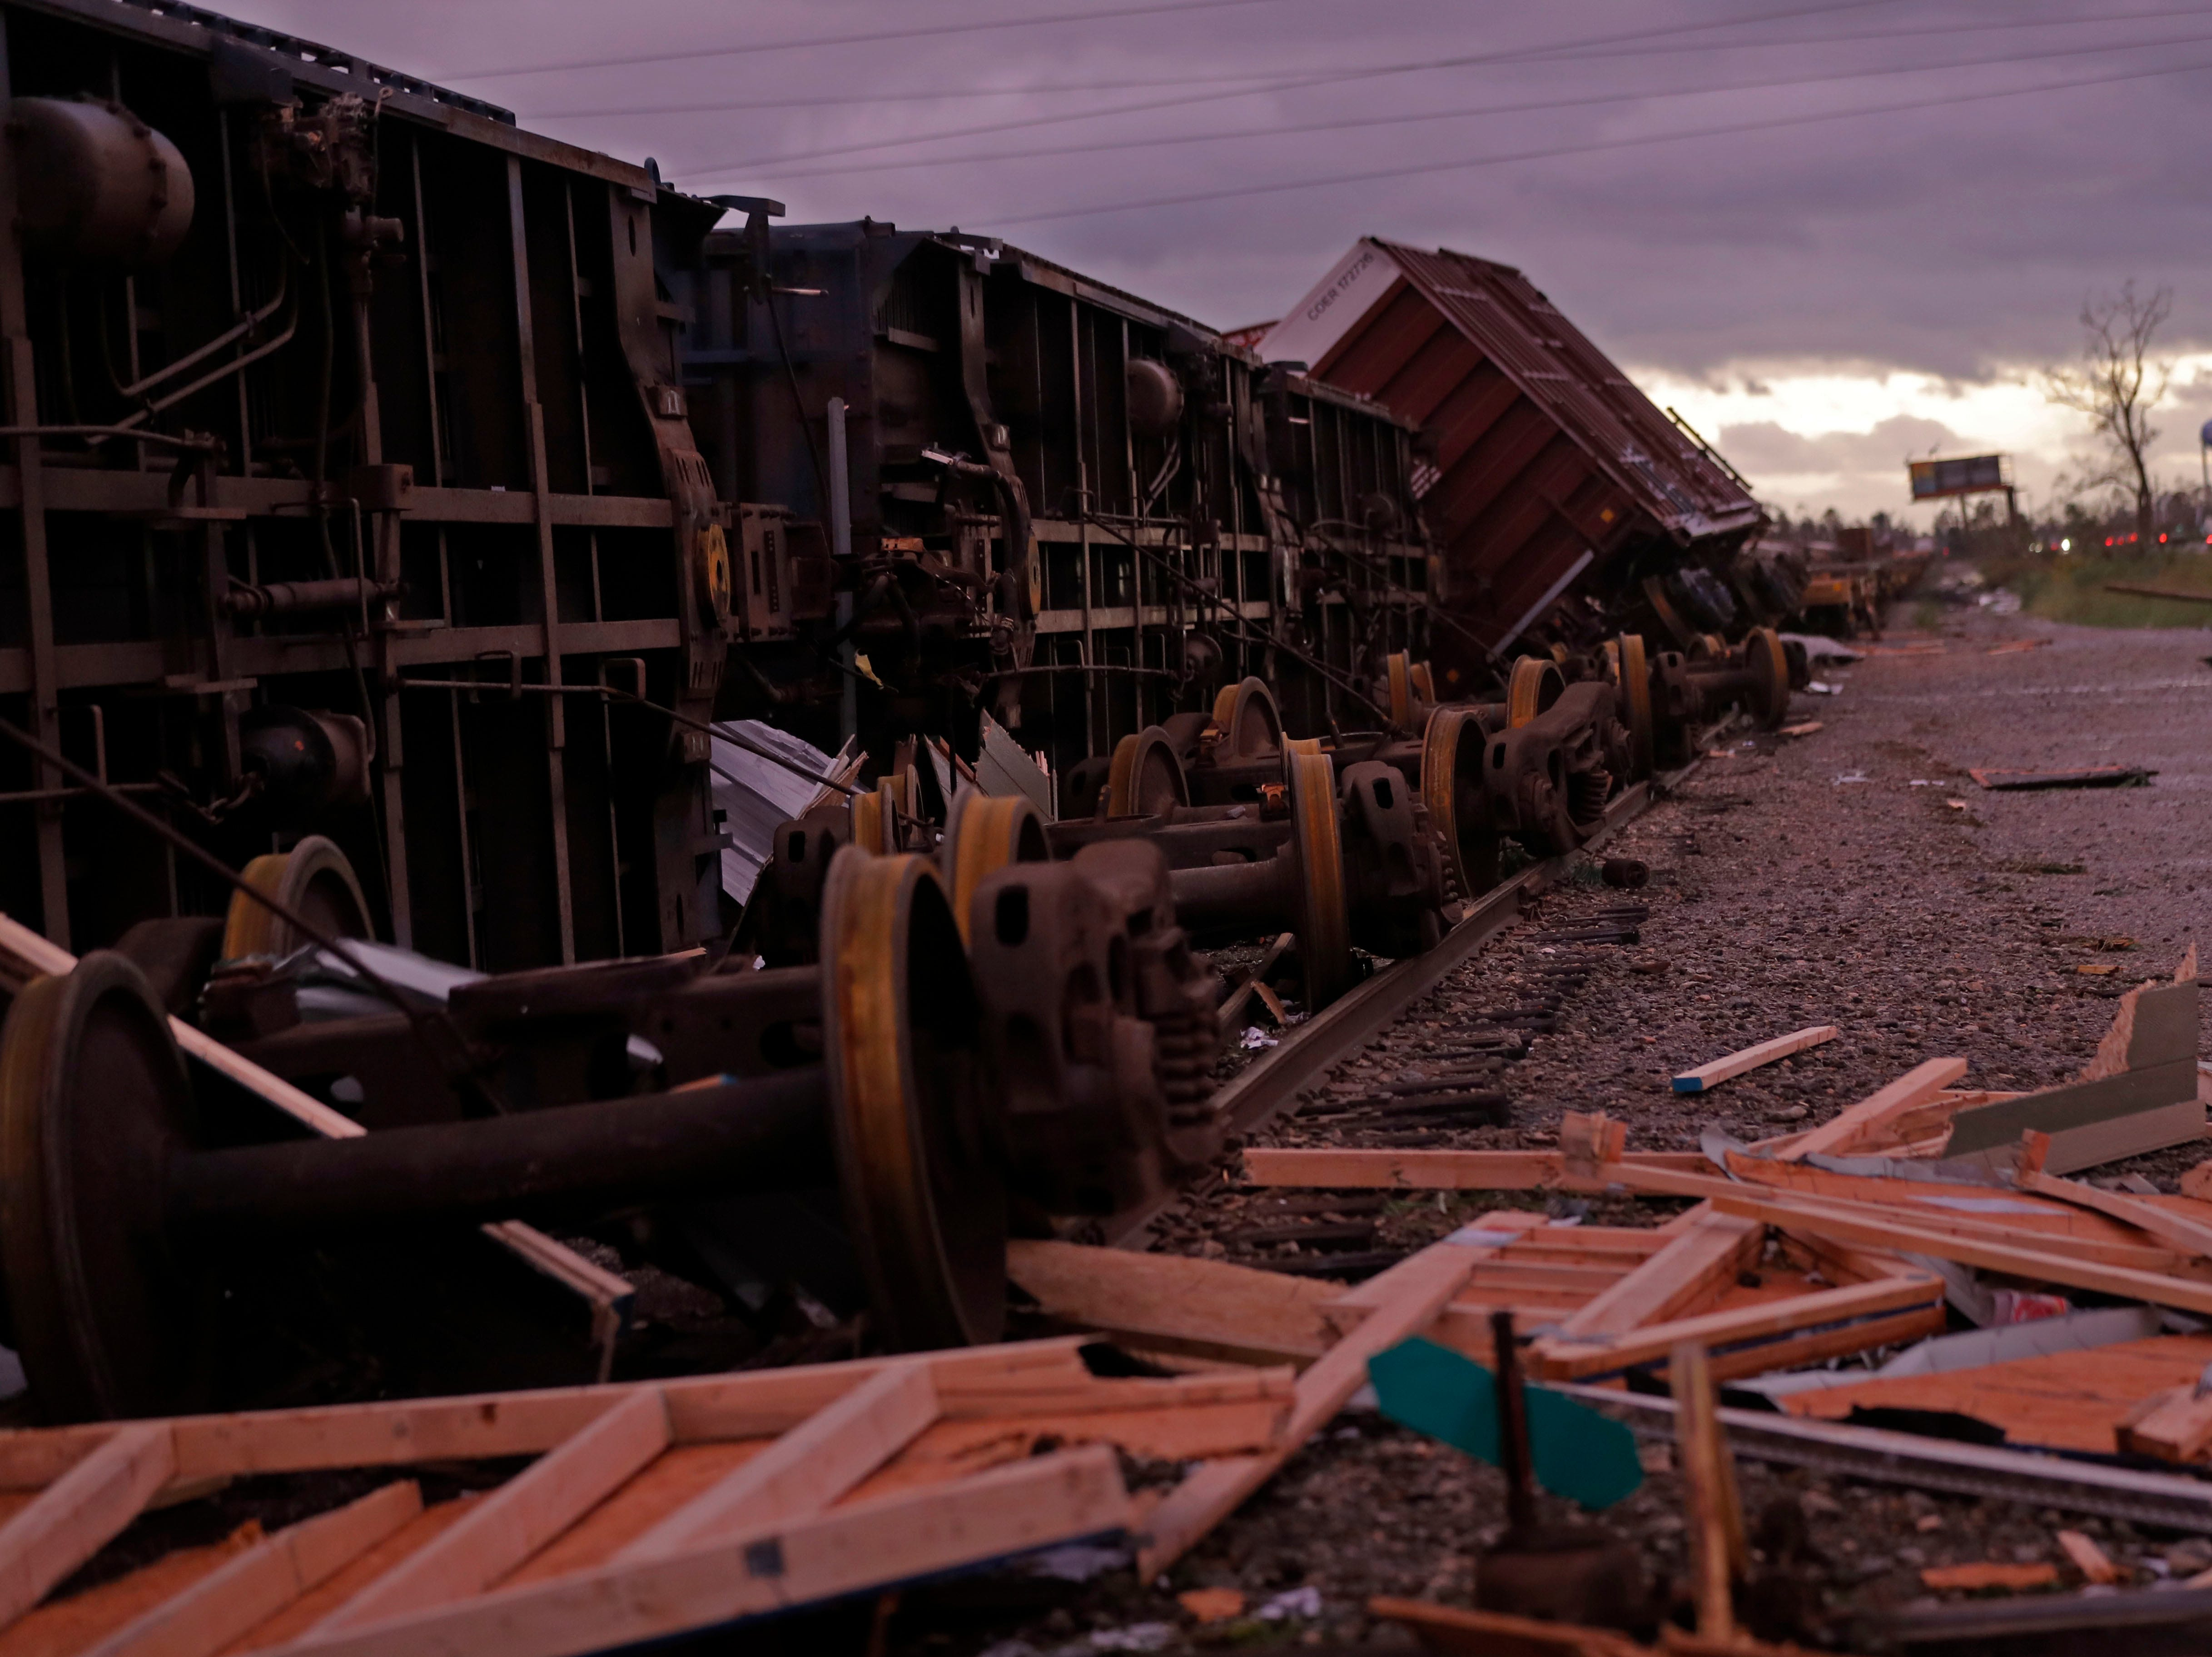 Derailed box cars are seen in the aftermath of Hurricane Michael in Panama City, Fla., Wednesday, Oct. 10, 2018.